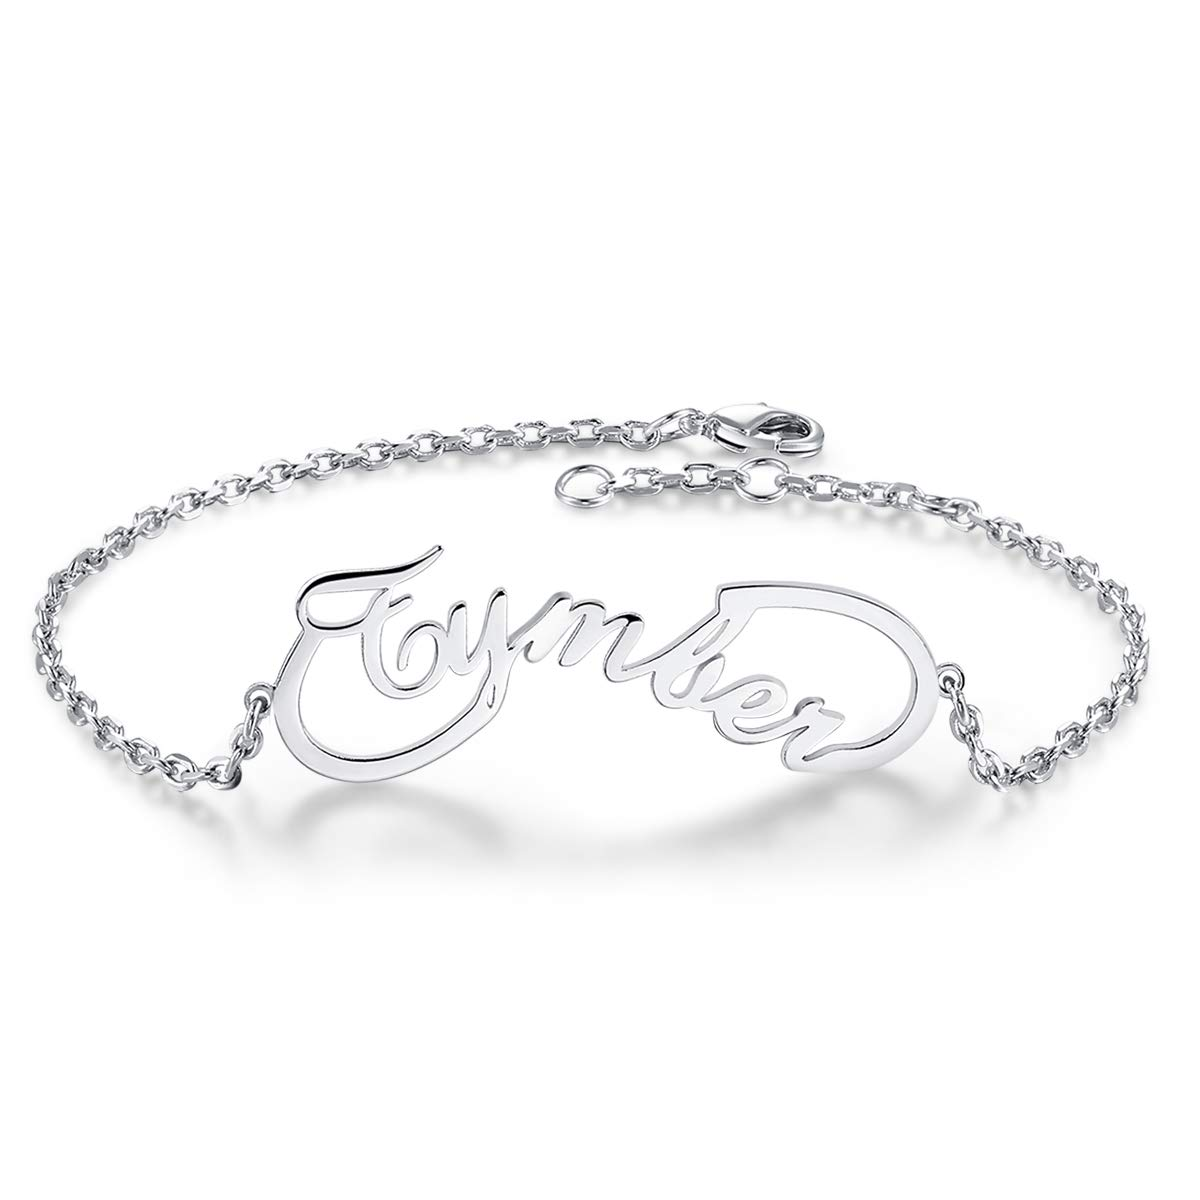 Custom Charm Link Bracelet Made with Any Names EVER2000 Infinity Name Bracelet Personalized